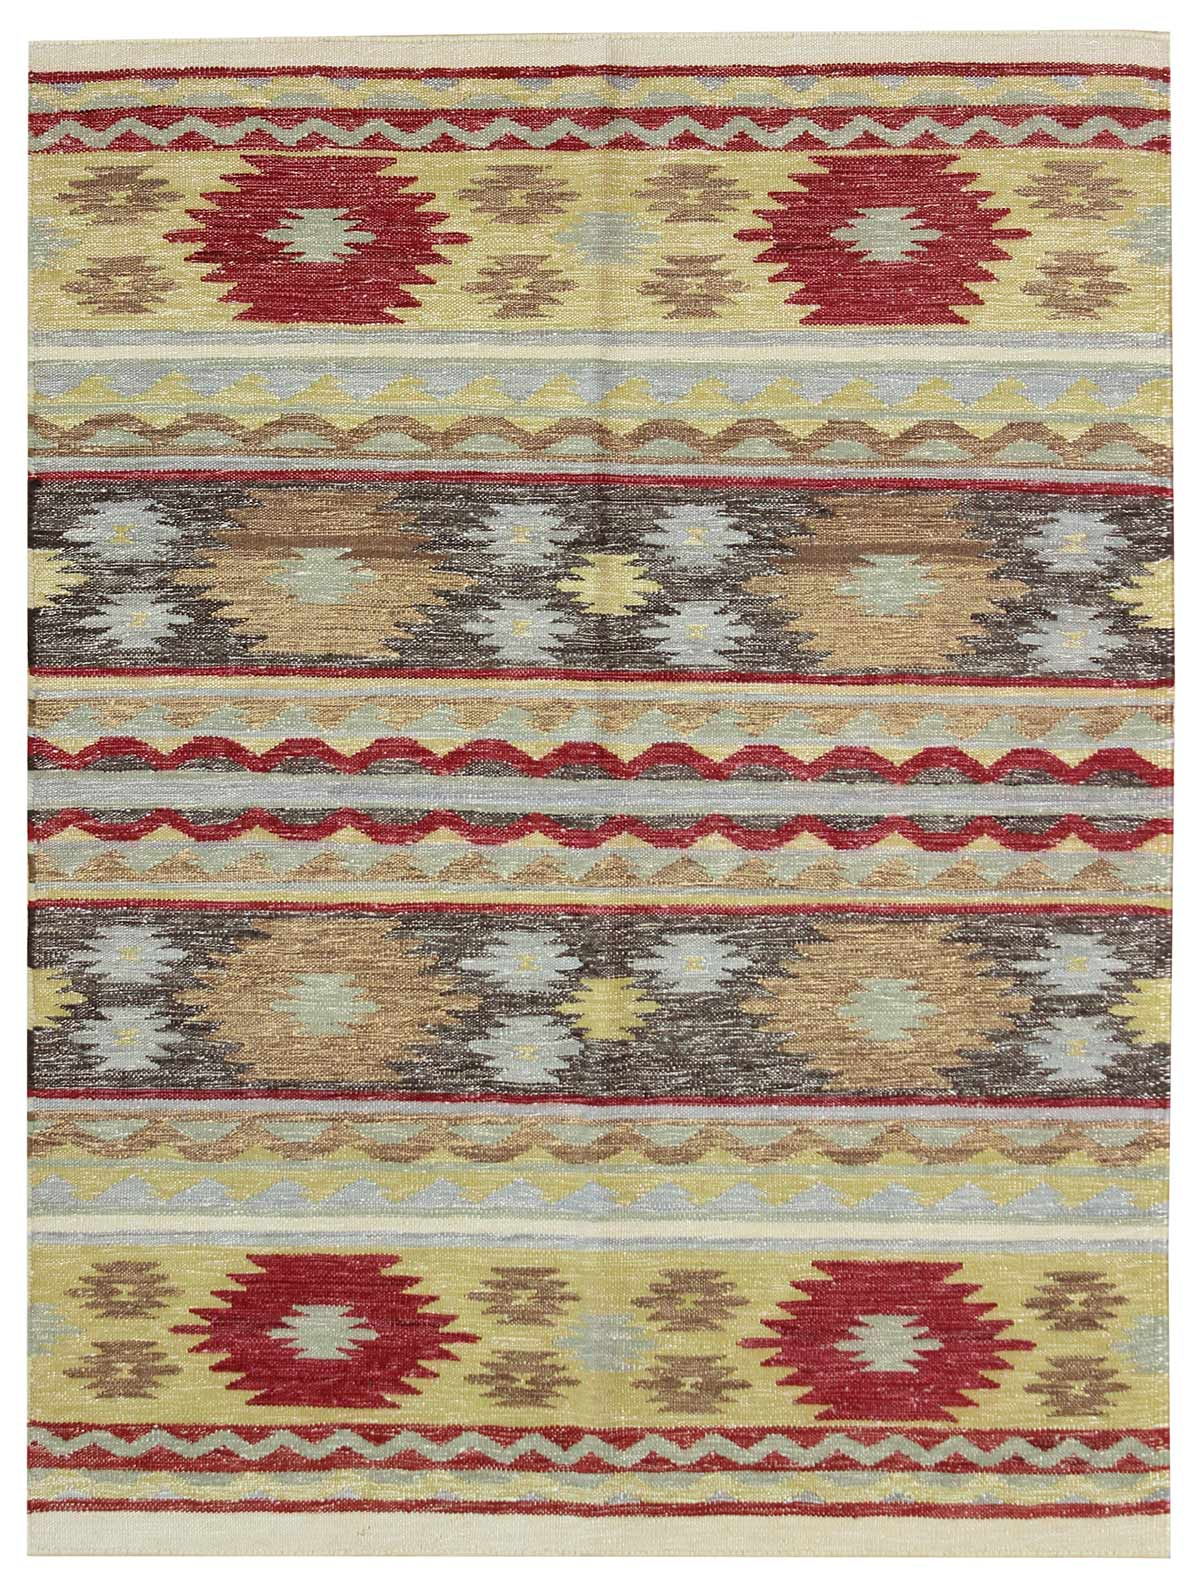 South West Handwoven Contemporary Rug